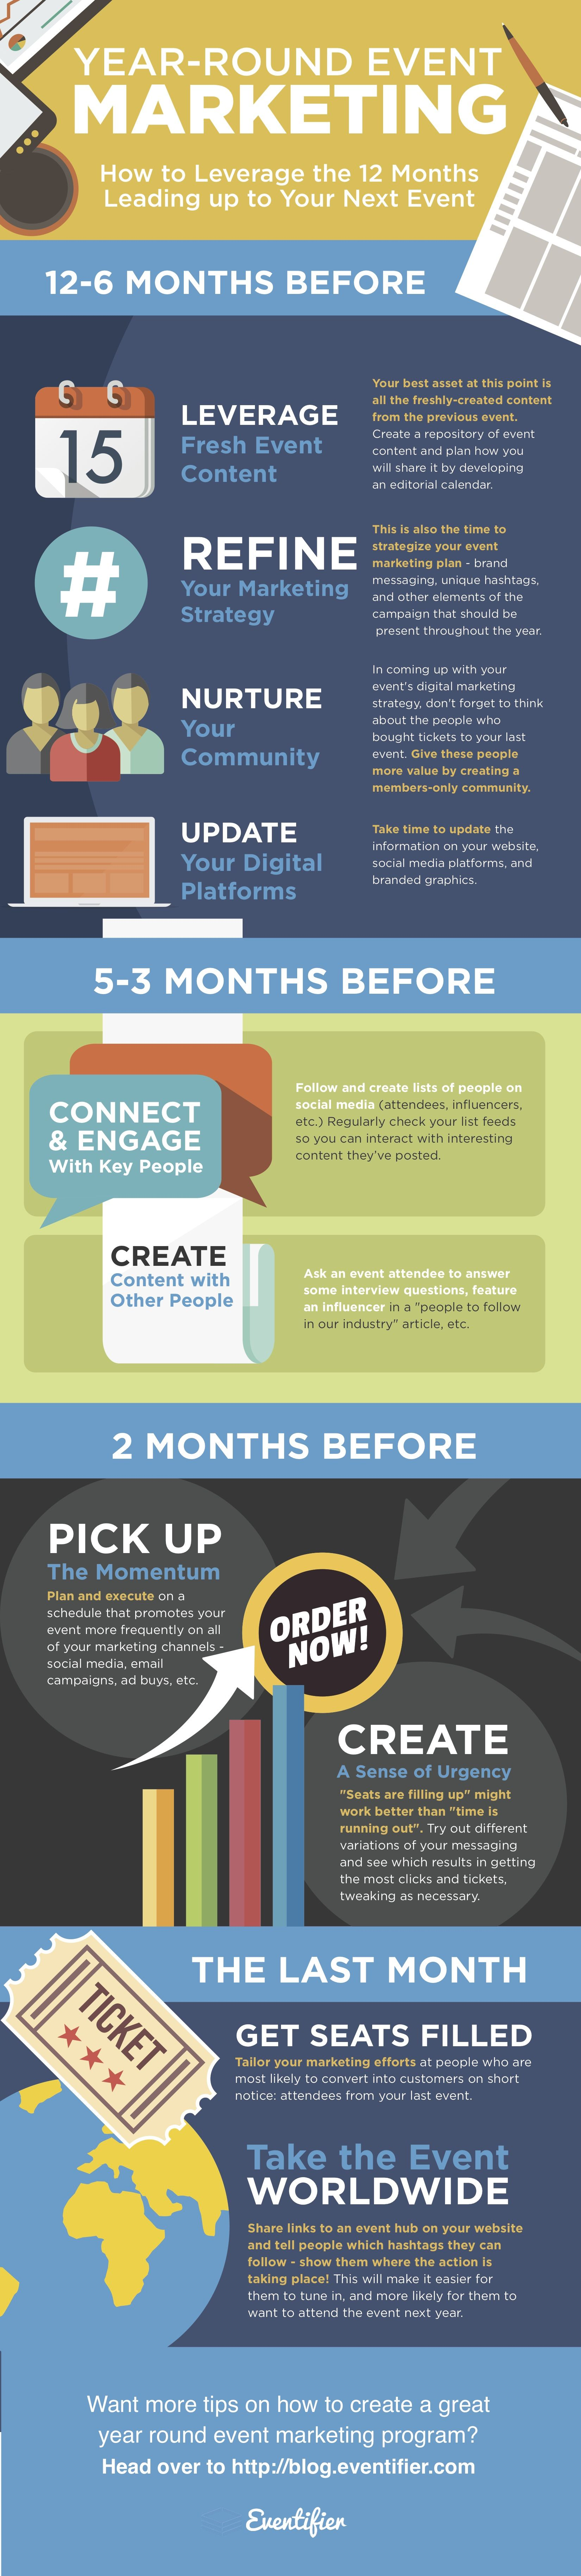 Year-Round Event Marketing #infographic